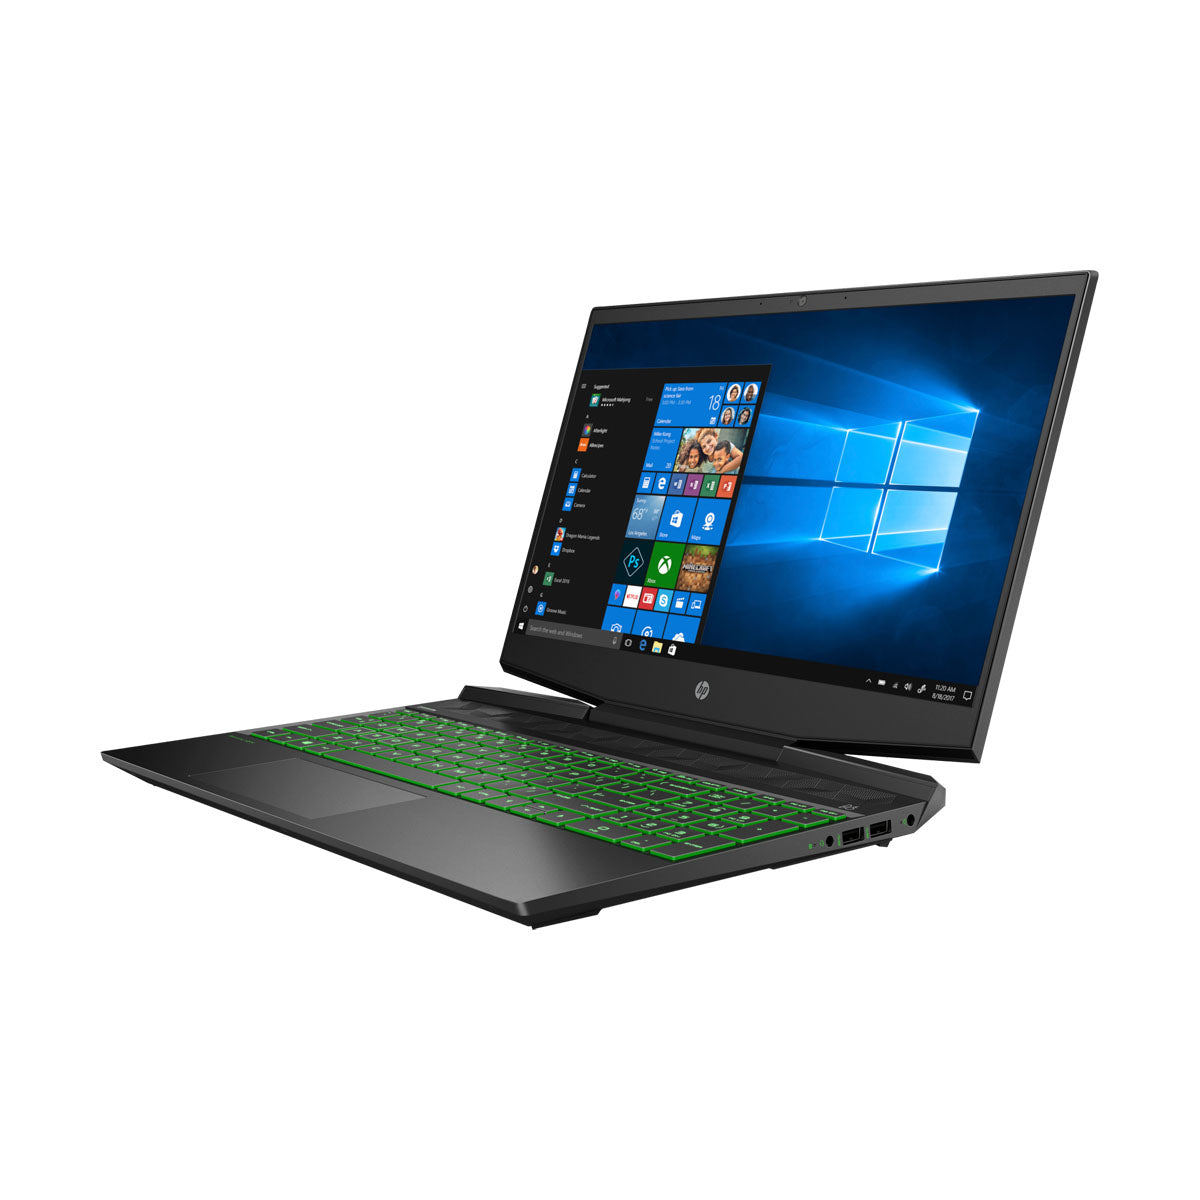 HP Pavilion 15-DK0096wm Gaming Laptop 15.6'' IPS FHD, Intel Core i5-9300H, GTX 1650 4GB GPU, 8GB RAM, 256GB SSD, Windows 10, English Backlit Keyboard